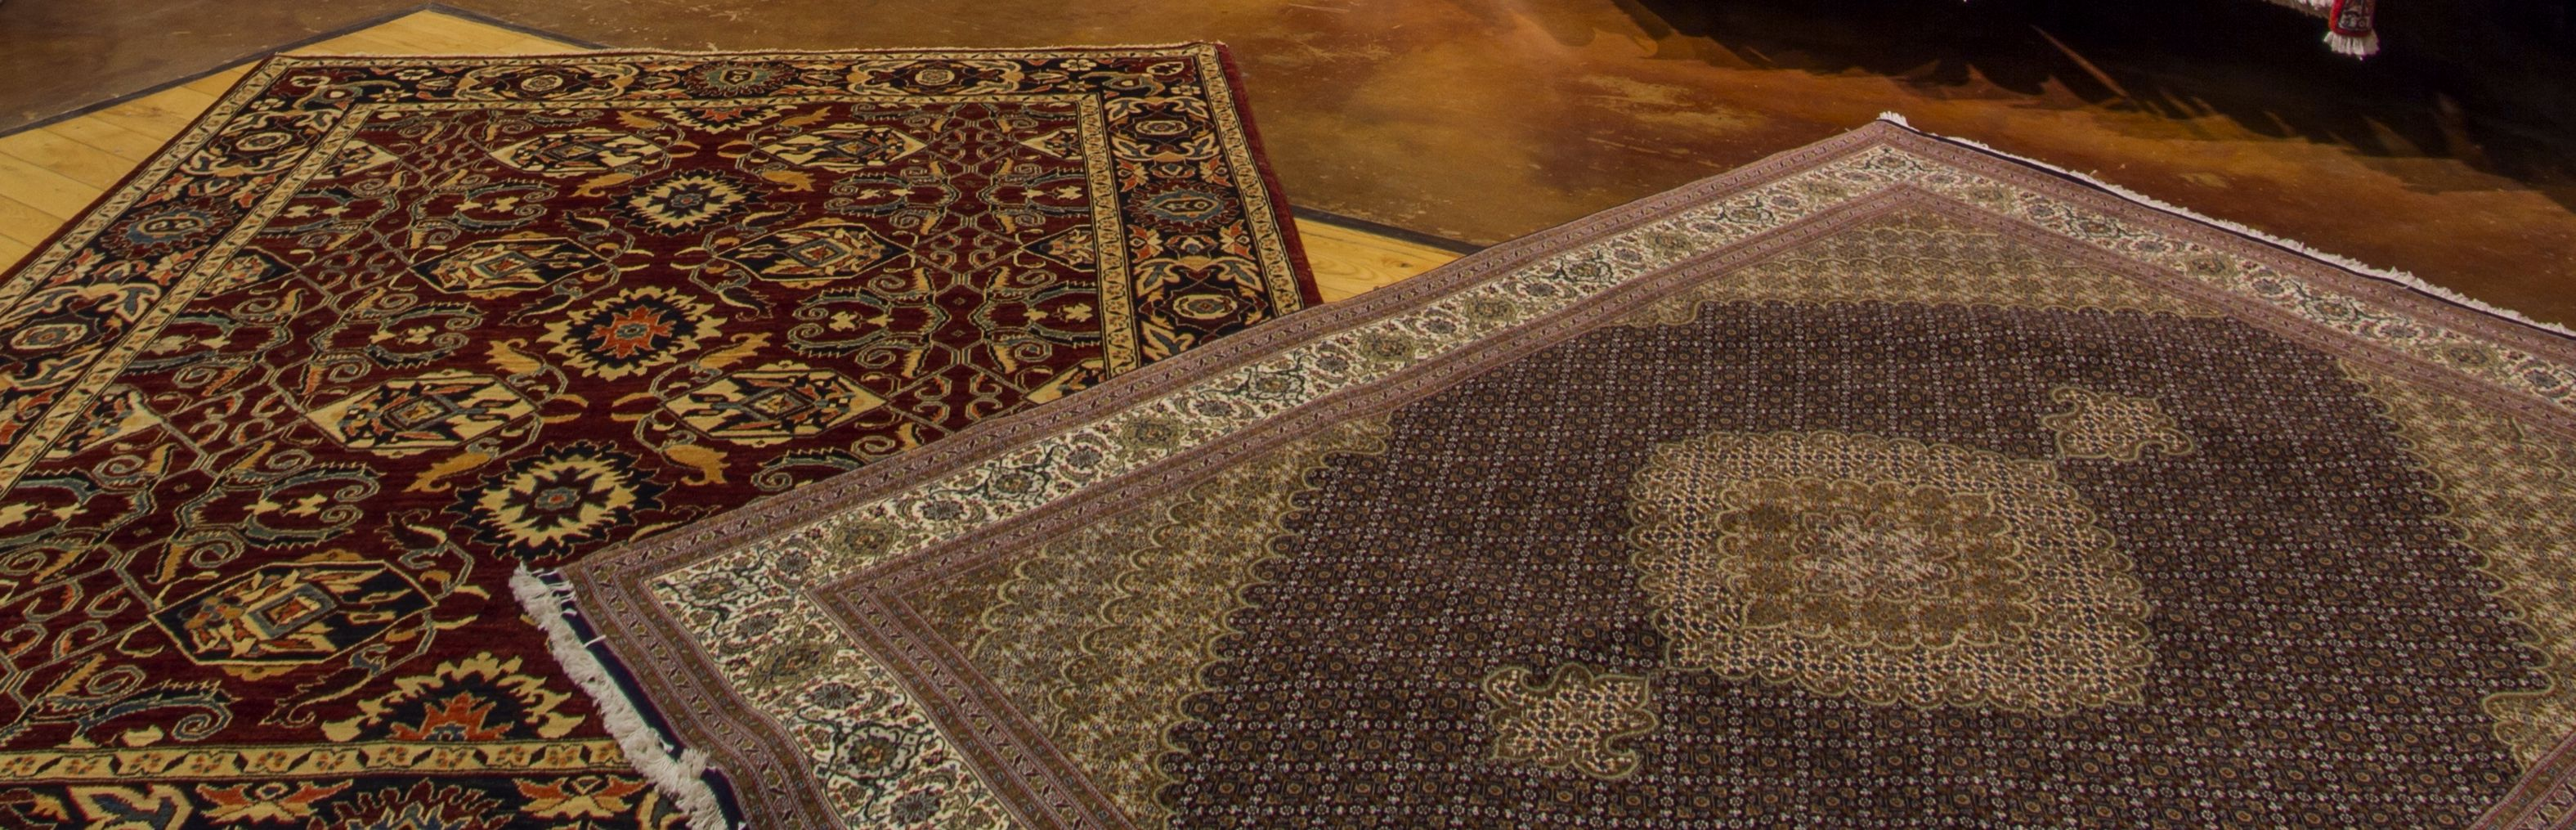 Two rugs on the floor